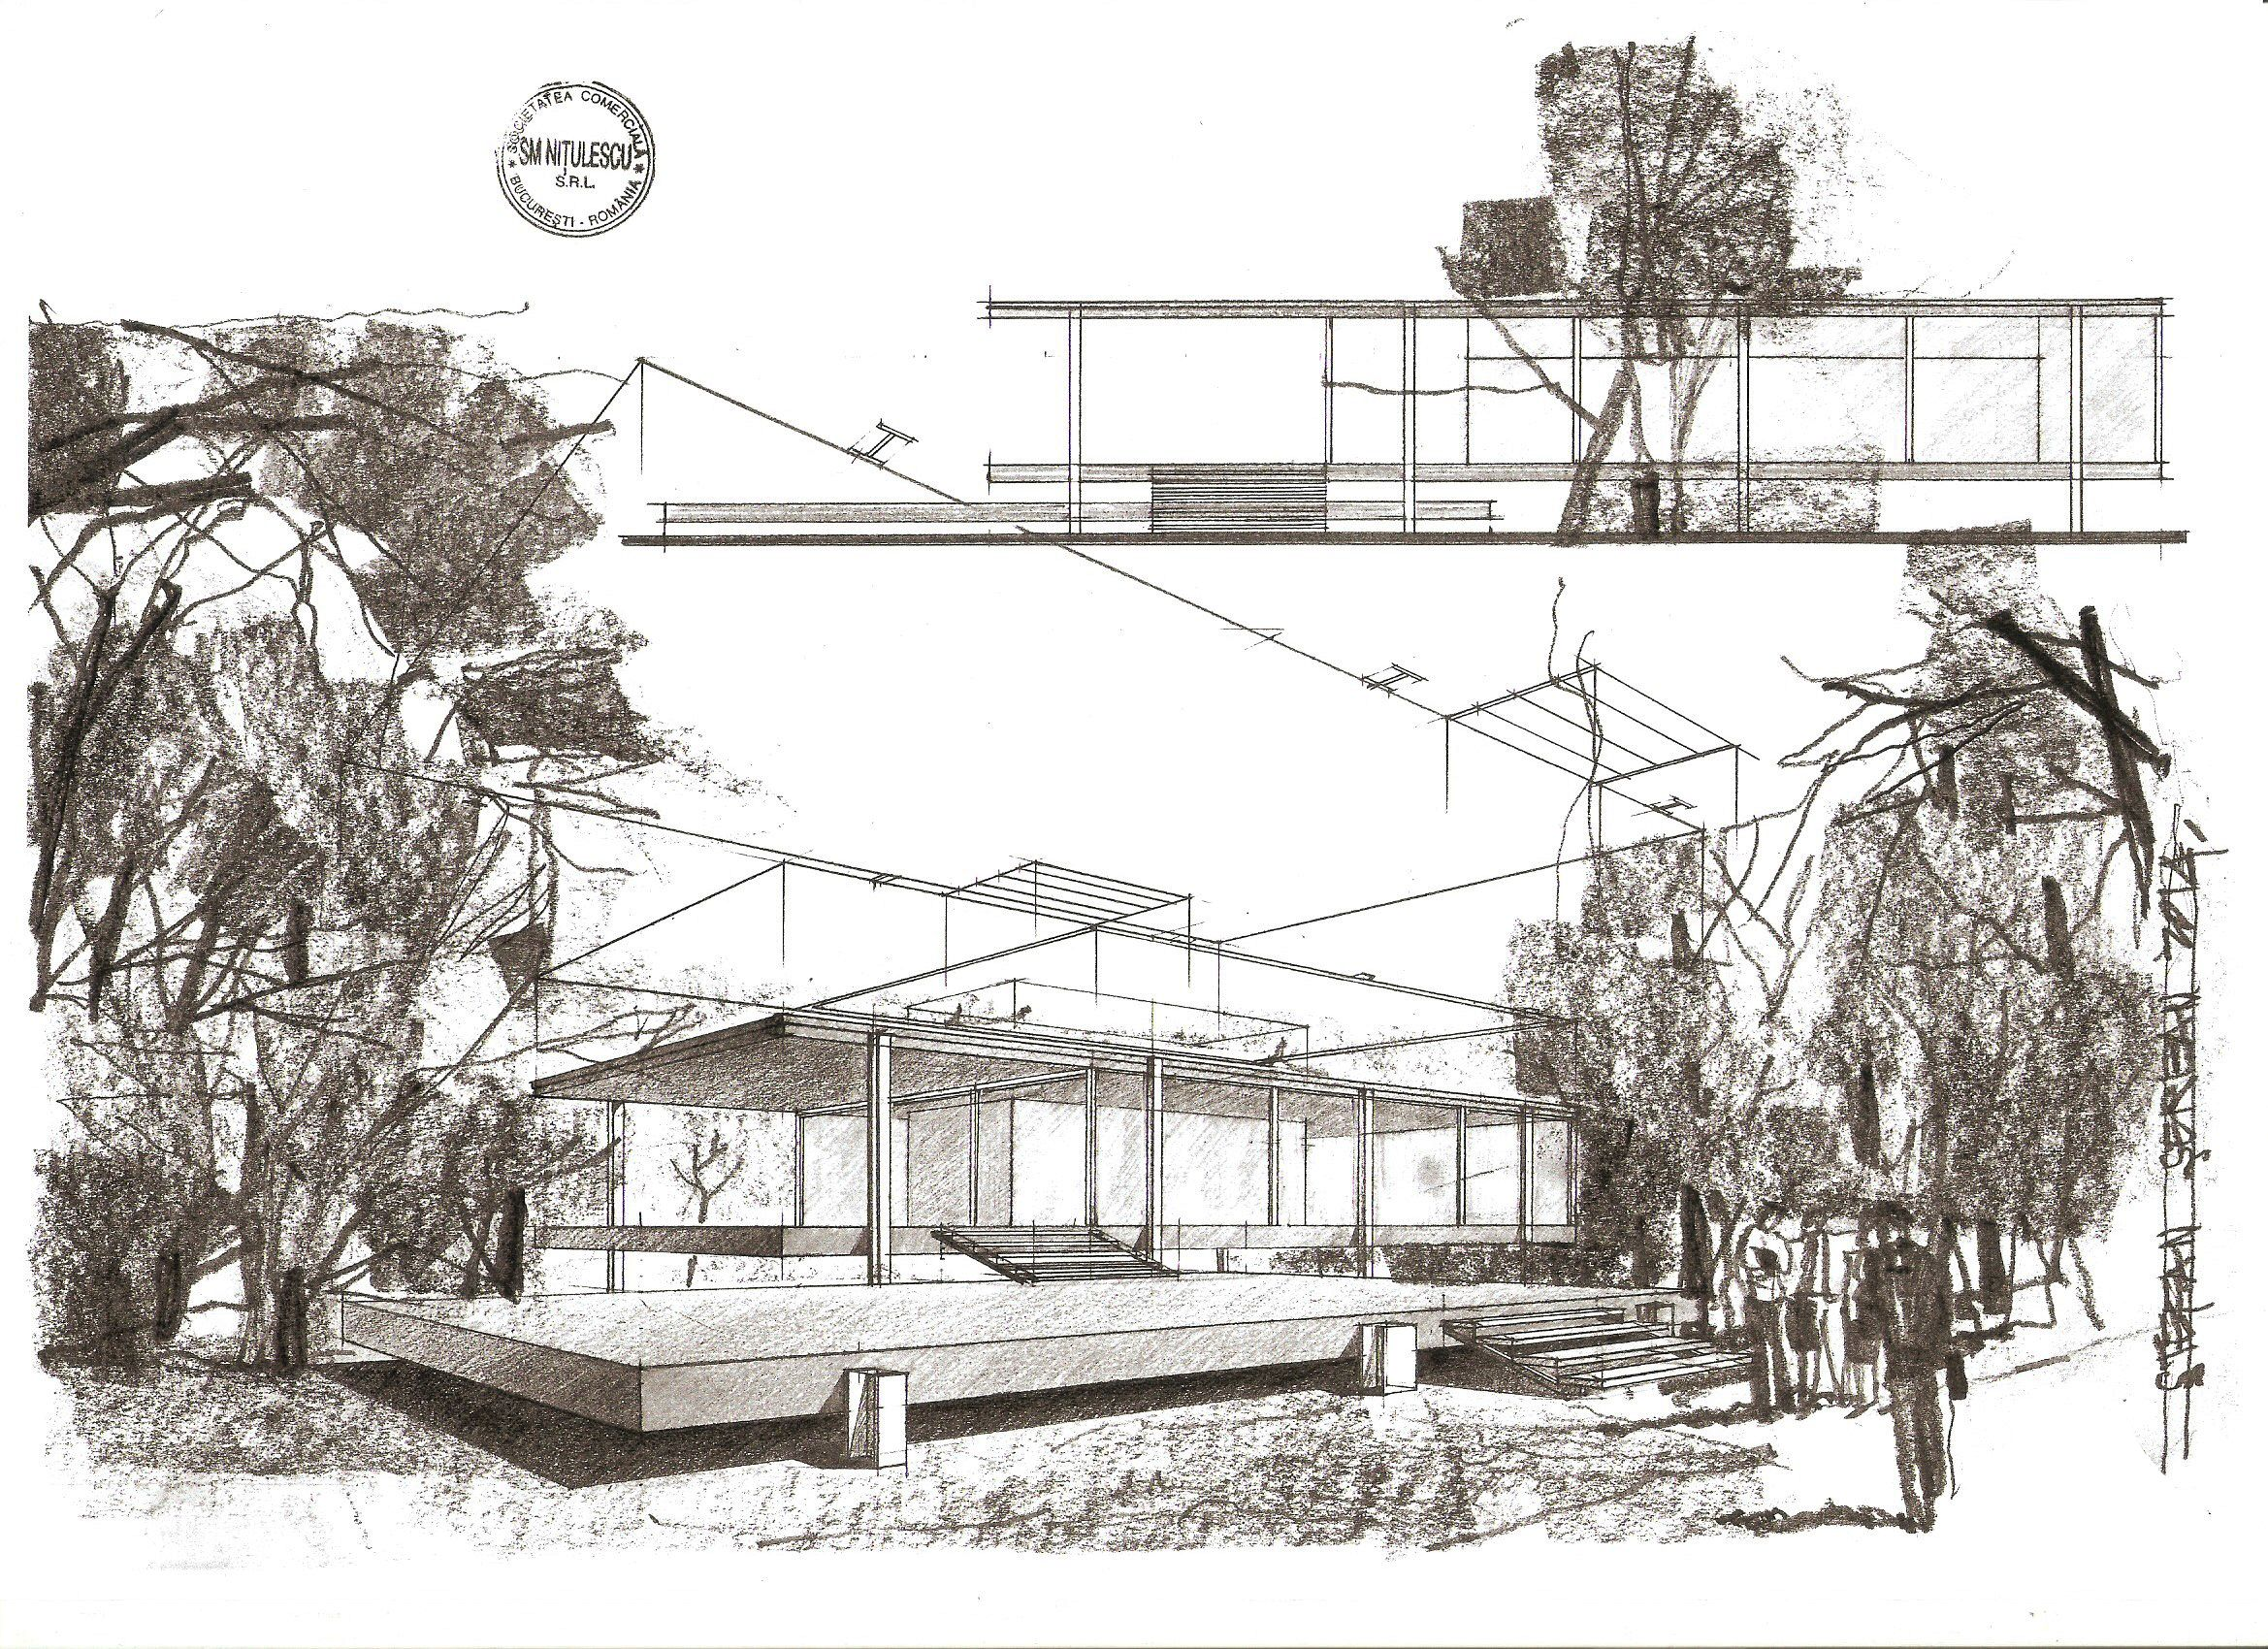 29 best farnsworth house images on Pinterest | Farnsworth house ...